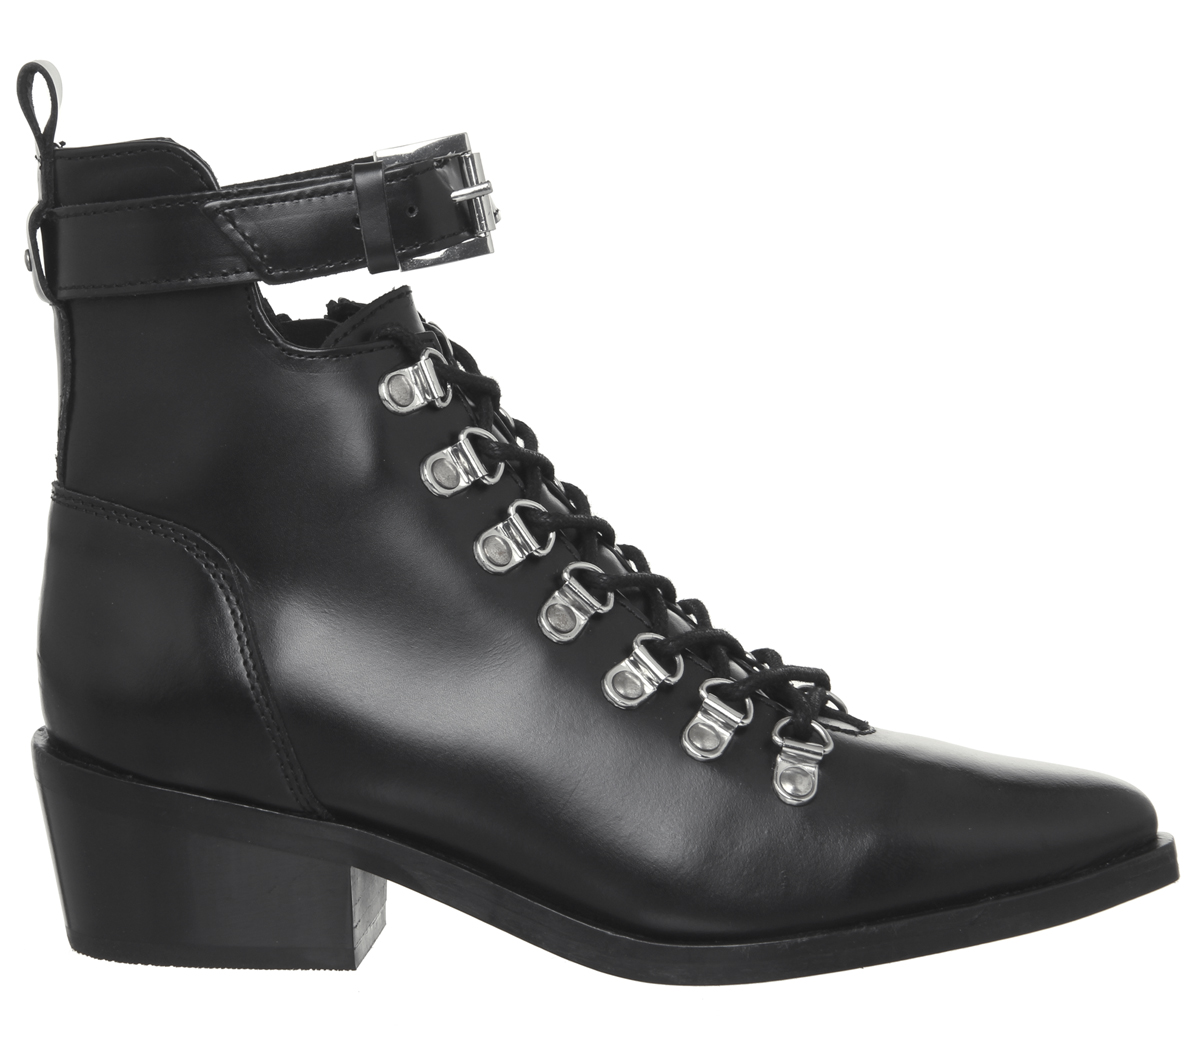 Womens-Office-Apocalypse-Lace-Detail-Point-Boots-Black-Leather-Boots thumbnail 6